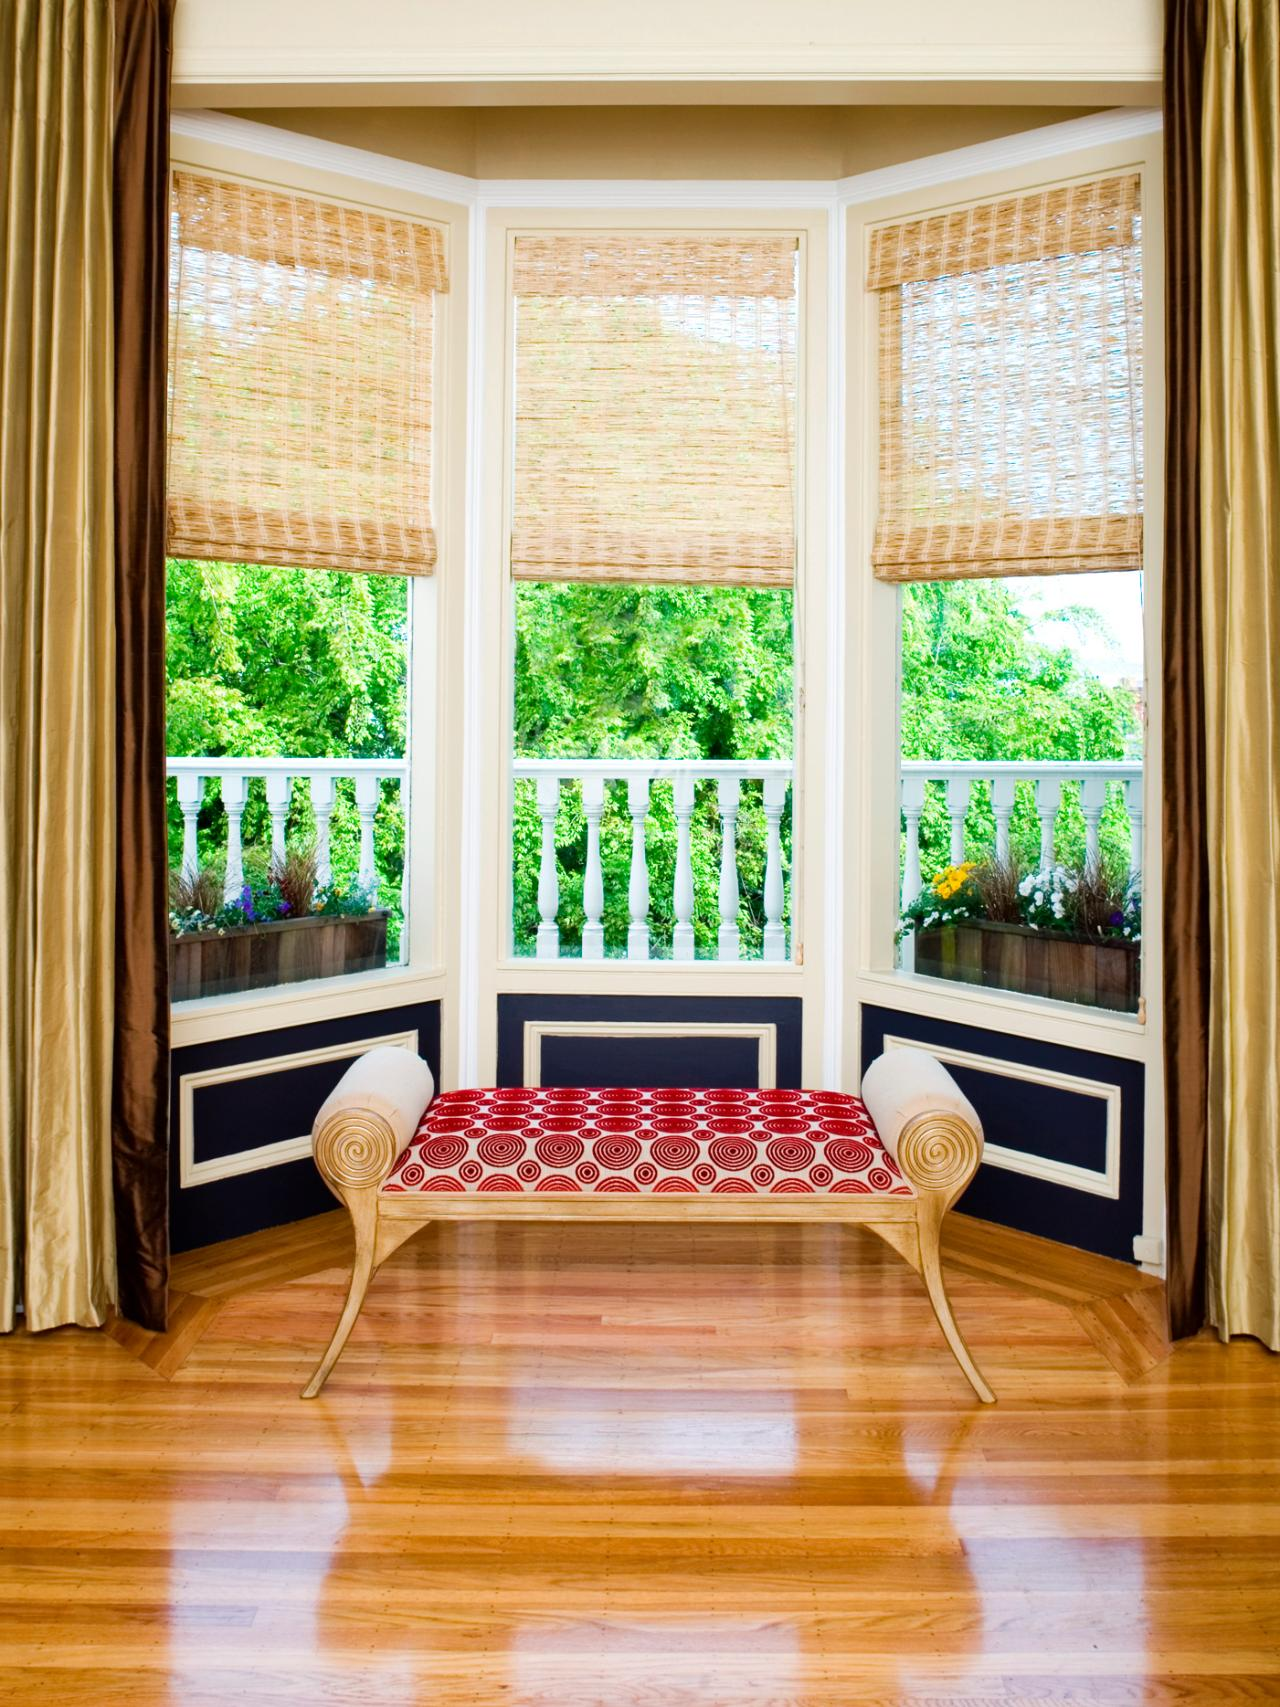 Modern Bay Window Styling Ideas : victorian flair windows bay from www.homedit.com size 1280 x 1707 jpeg 338kB